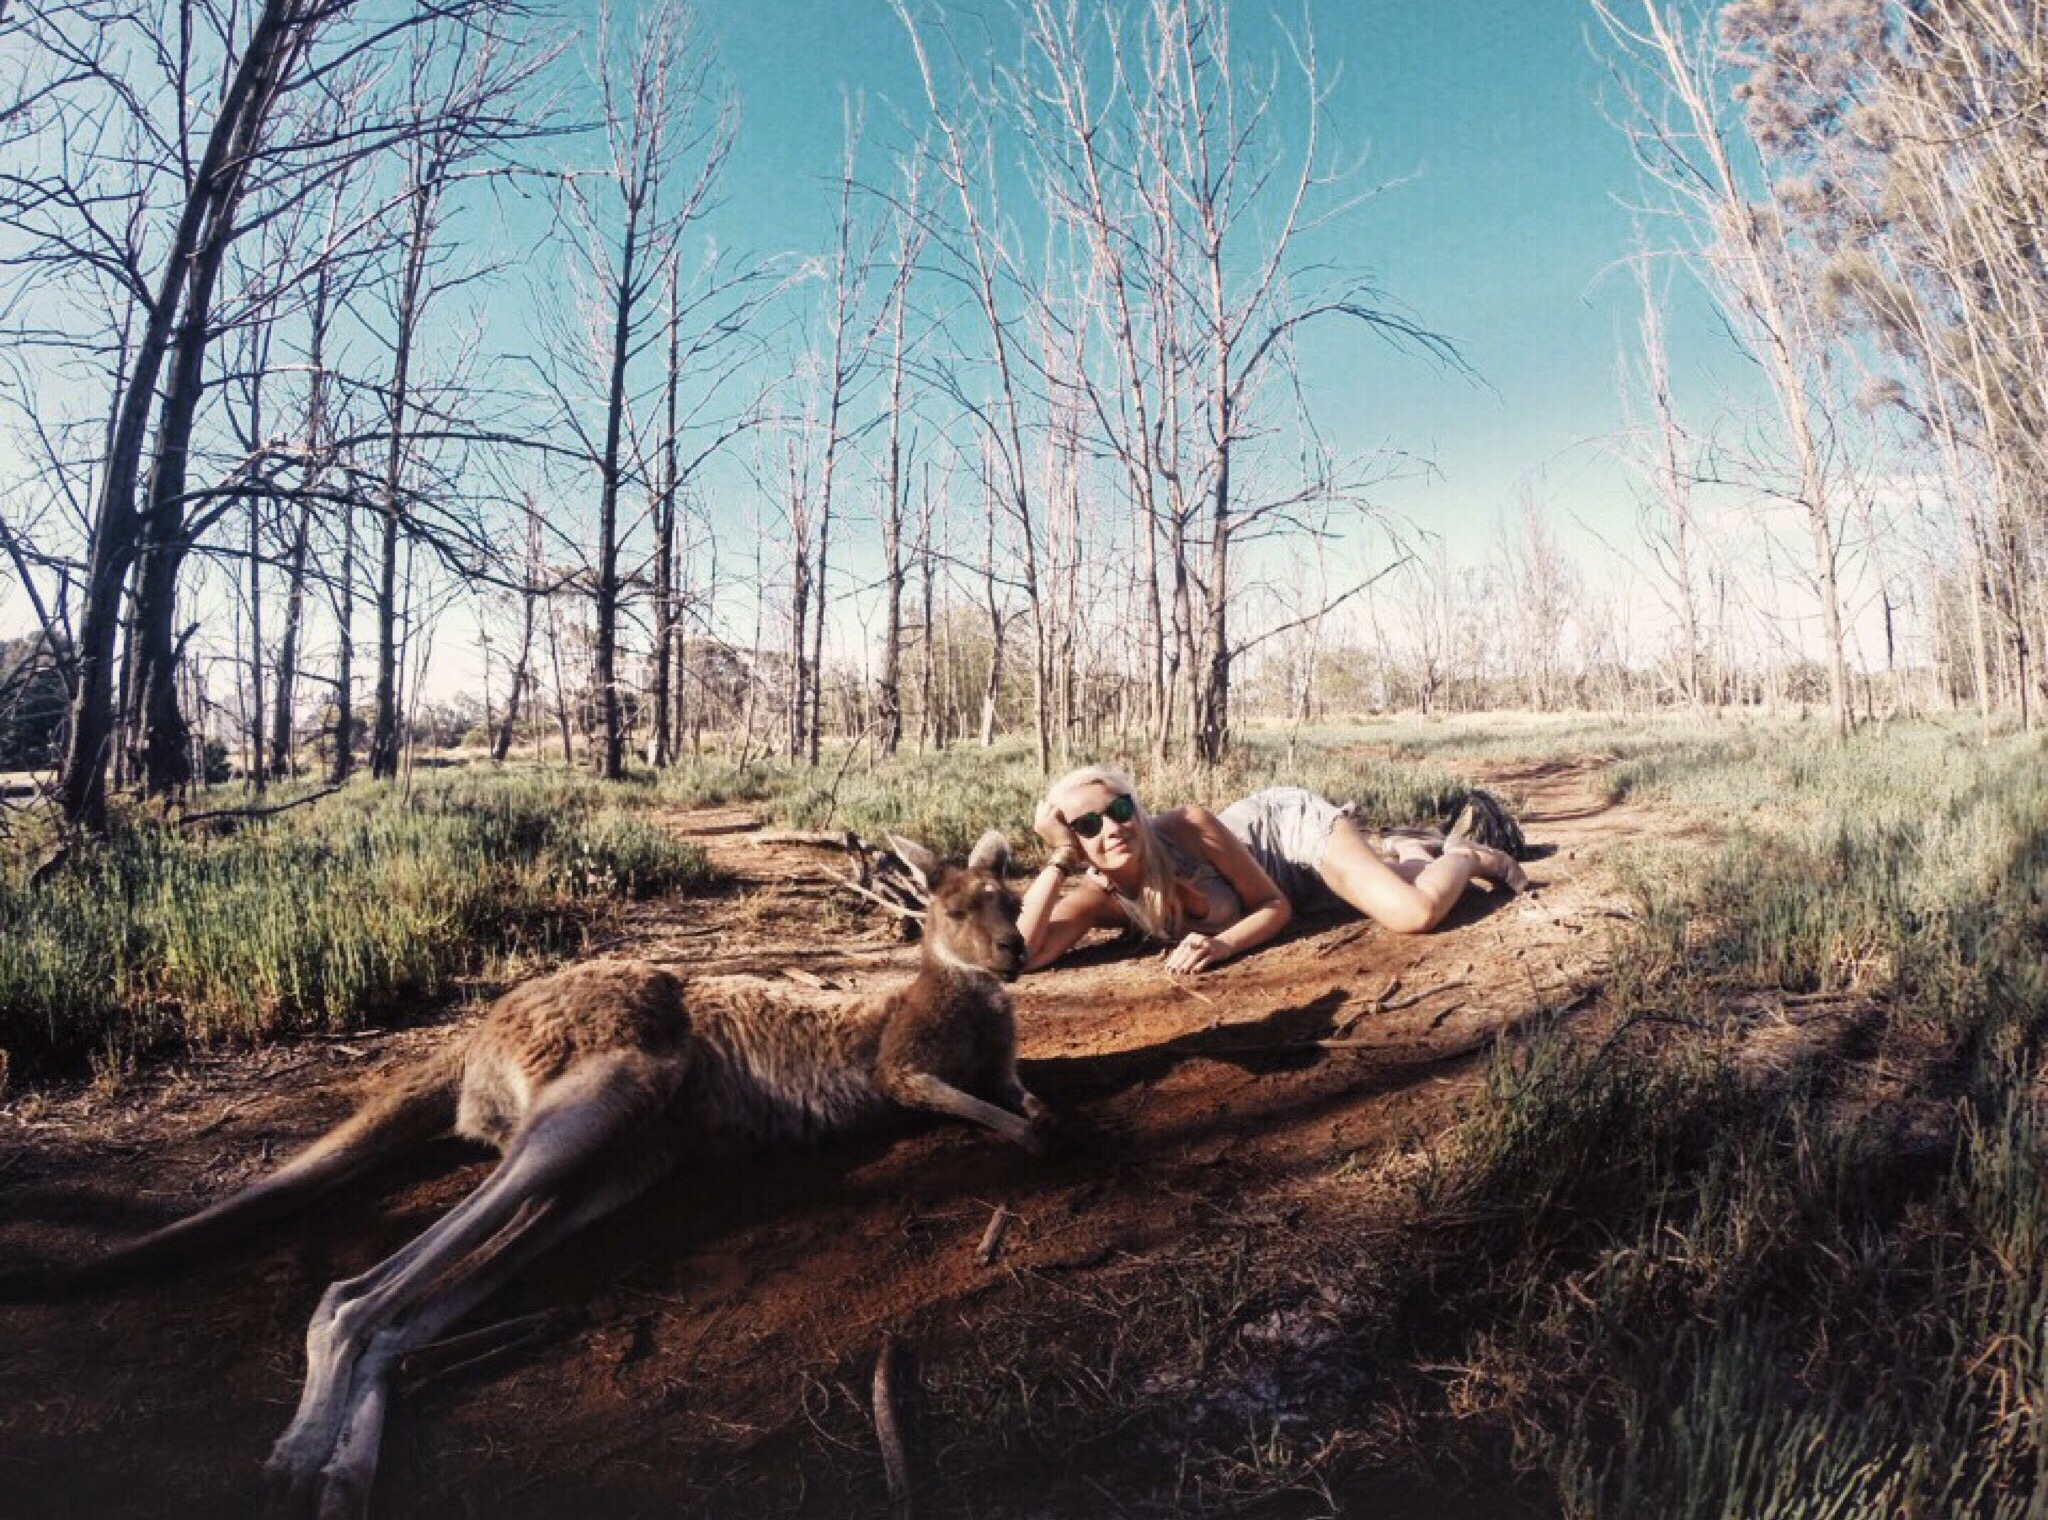 Chilling with the roos in Australia